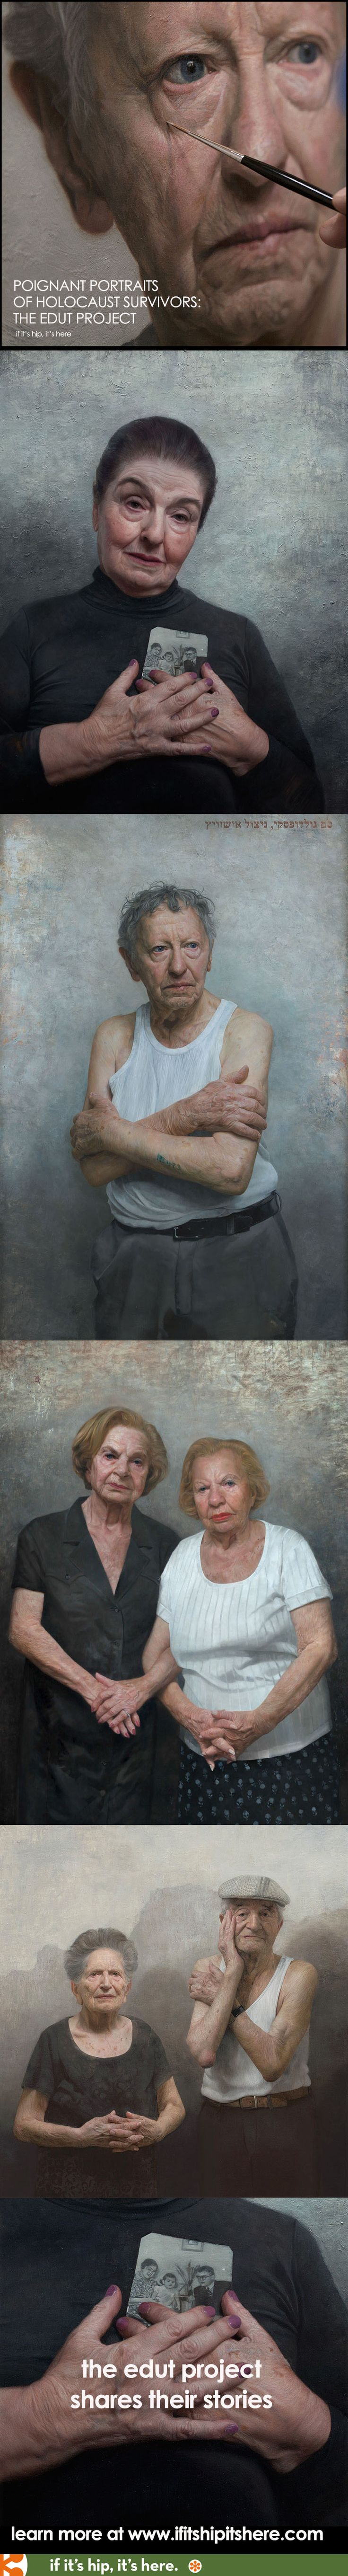 David Kassan's beautifully painted portraits of Holocaust Survivors at http://www.ifitshipitshere.com/portraits-of-holocaust-survivors/